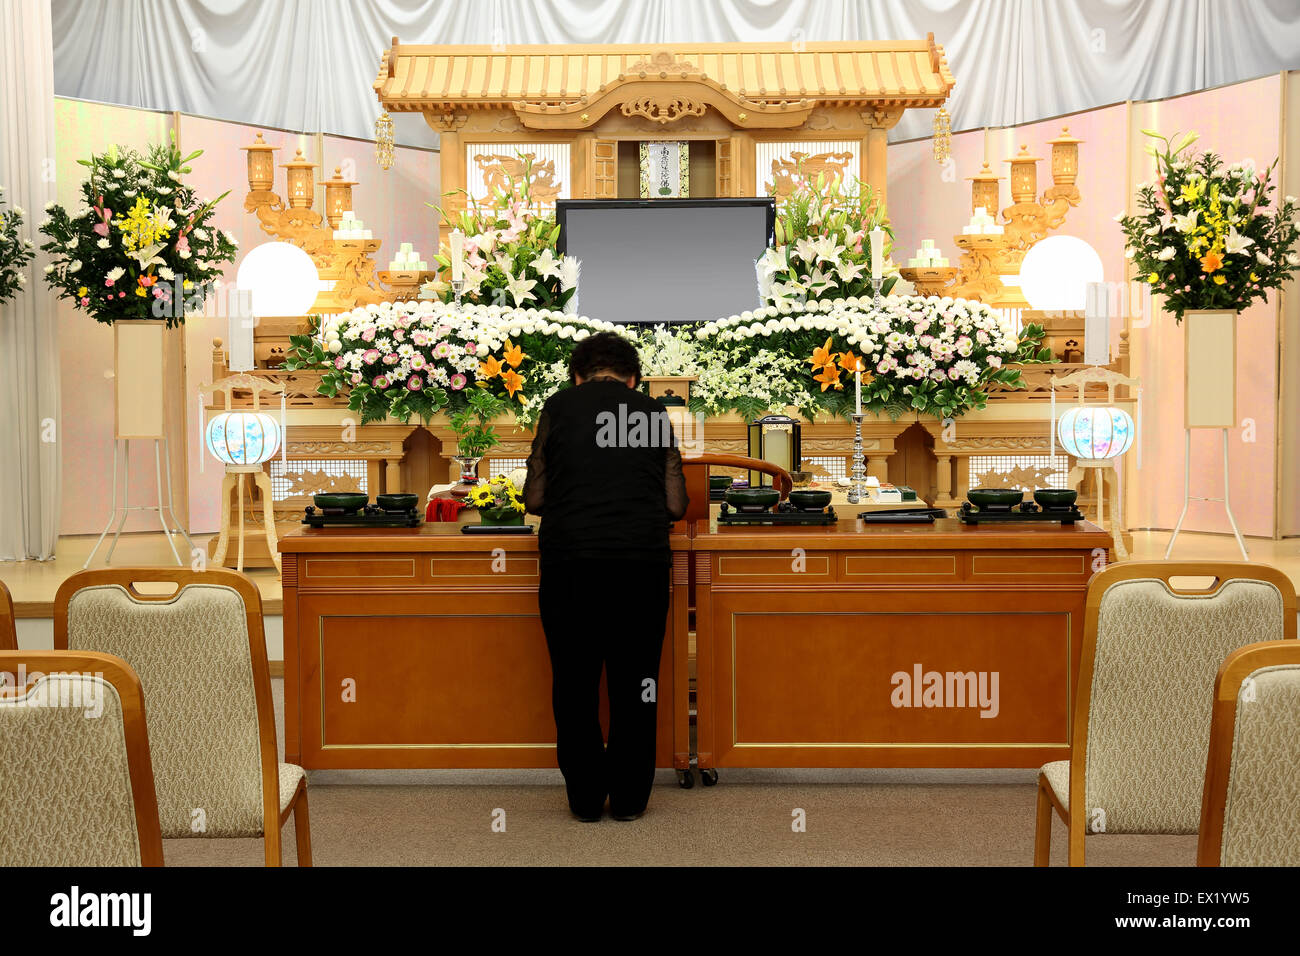 Funeral Home Of Japanese Style Stock Photo 84866353 Alamy